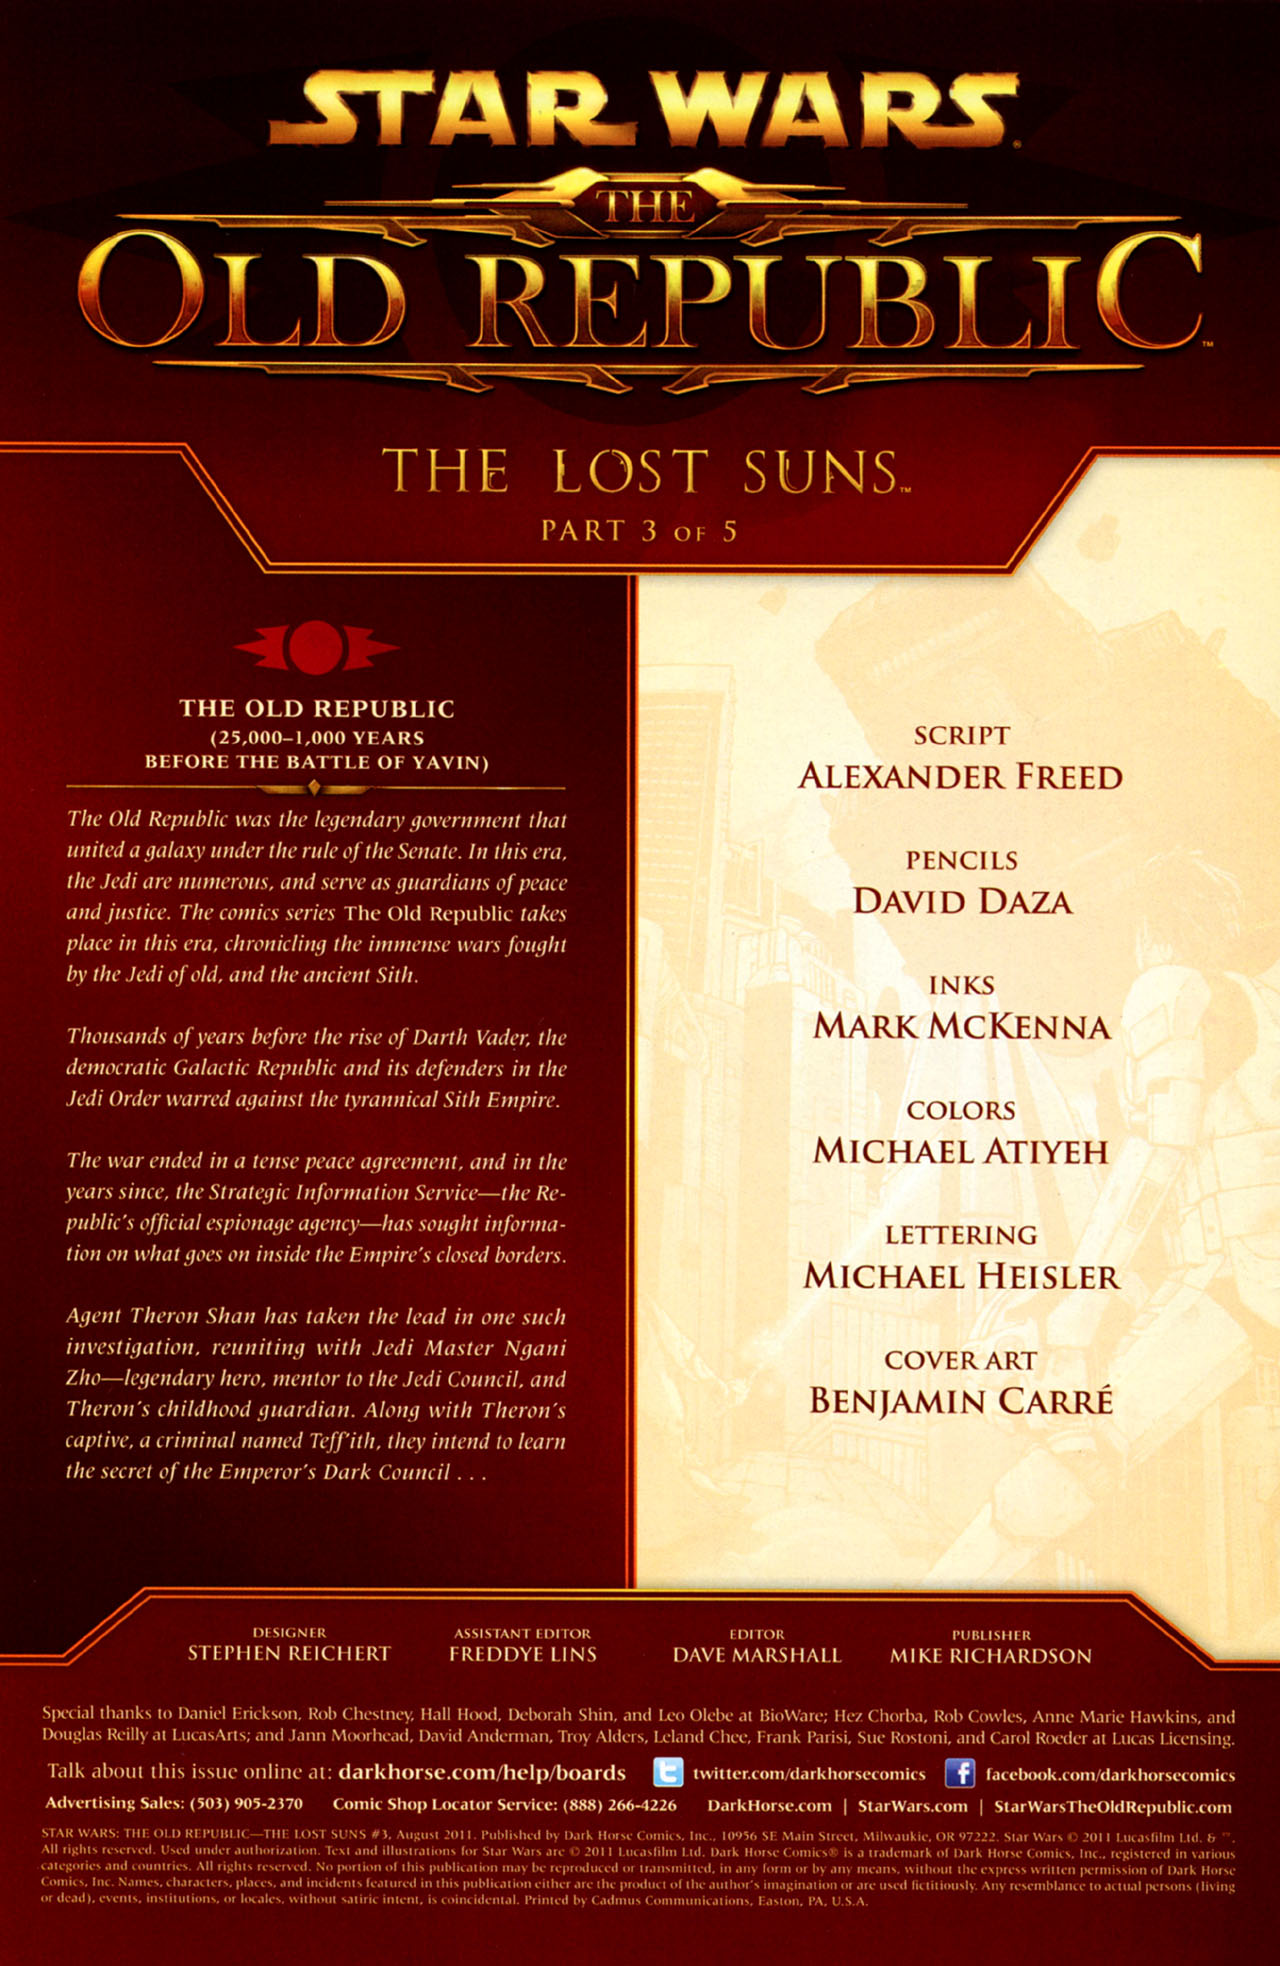 Read online Star Wars: The Old Republic - The Lost Suns comic -  Issue #3 - 2